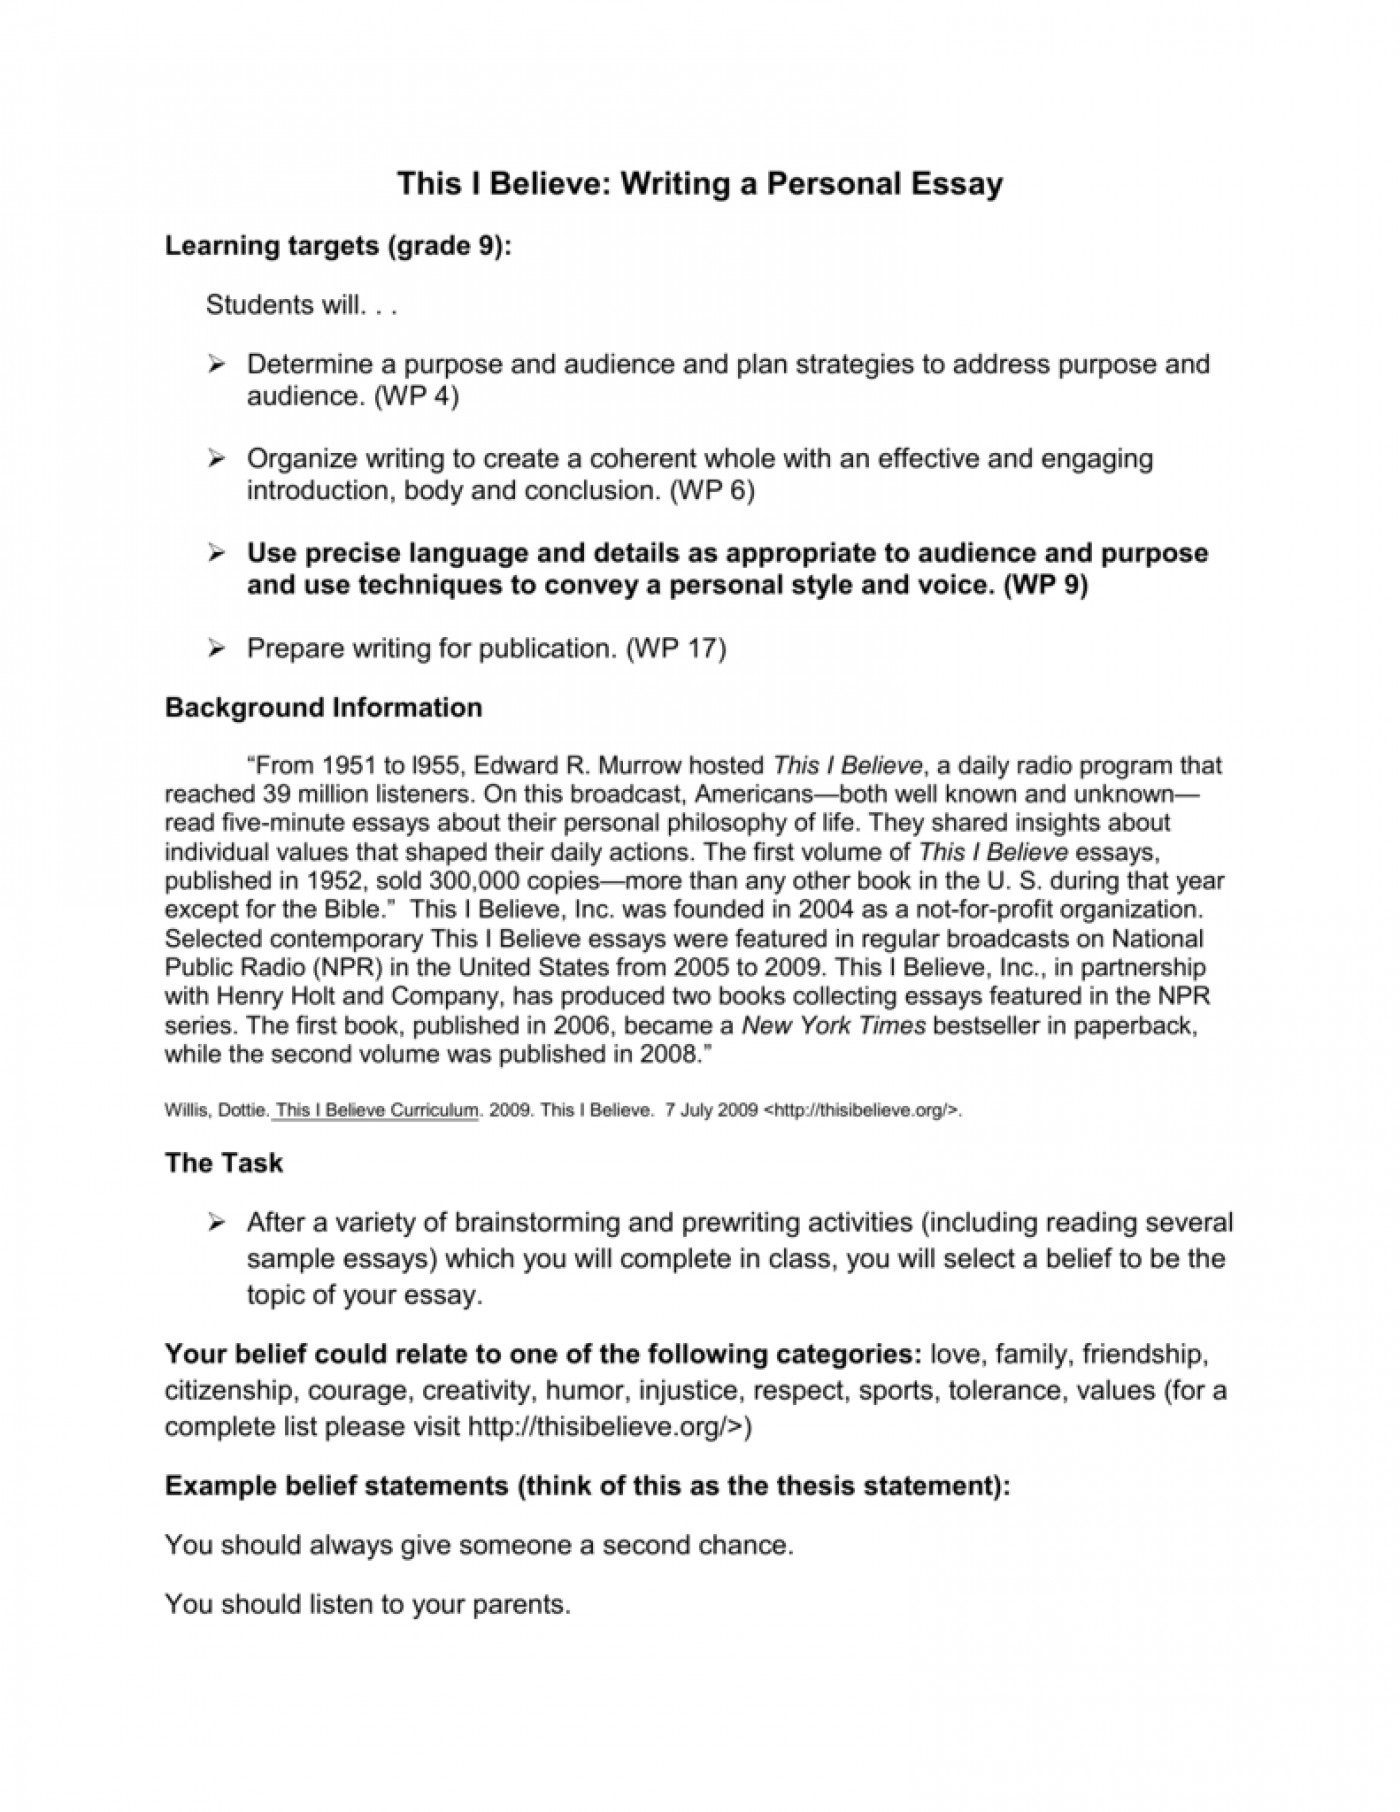 002 006750112 1 Essay Example This I Believe Fearsome Topics Funny Prompt 1400